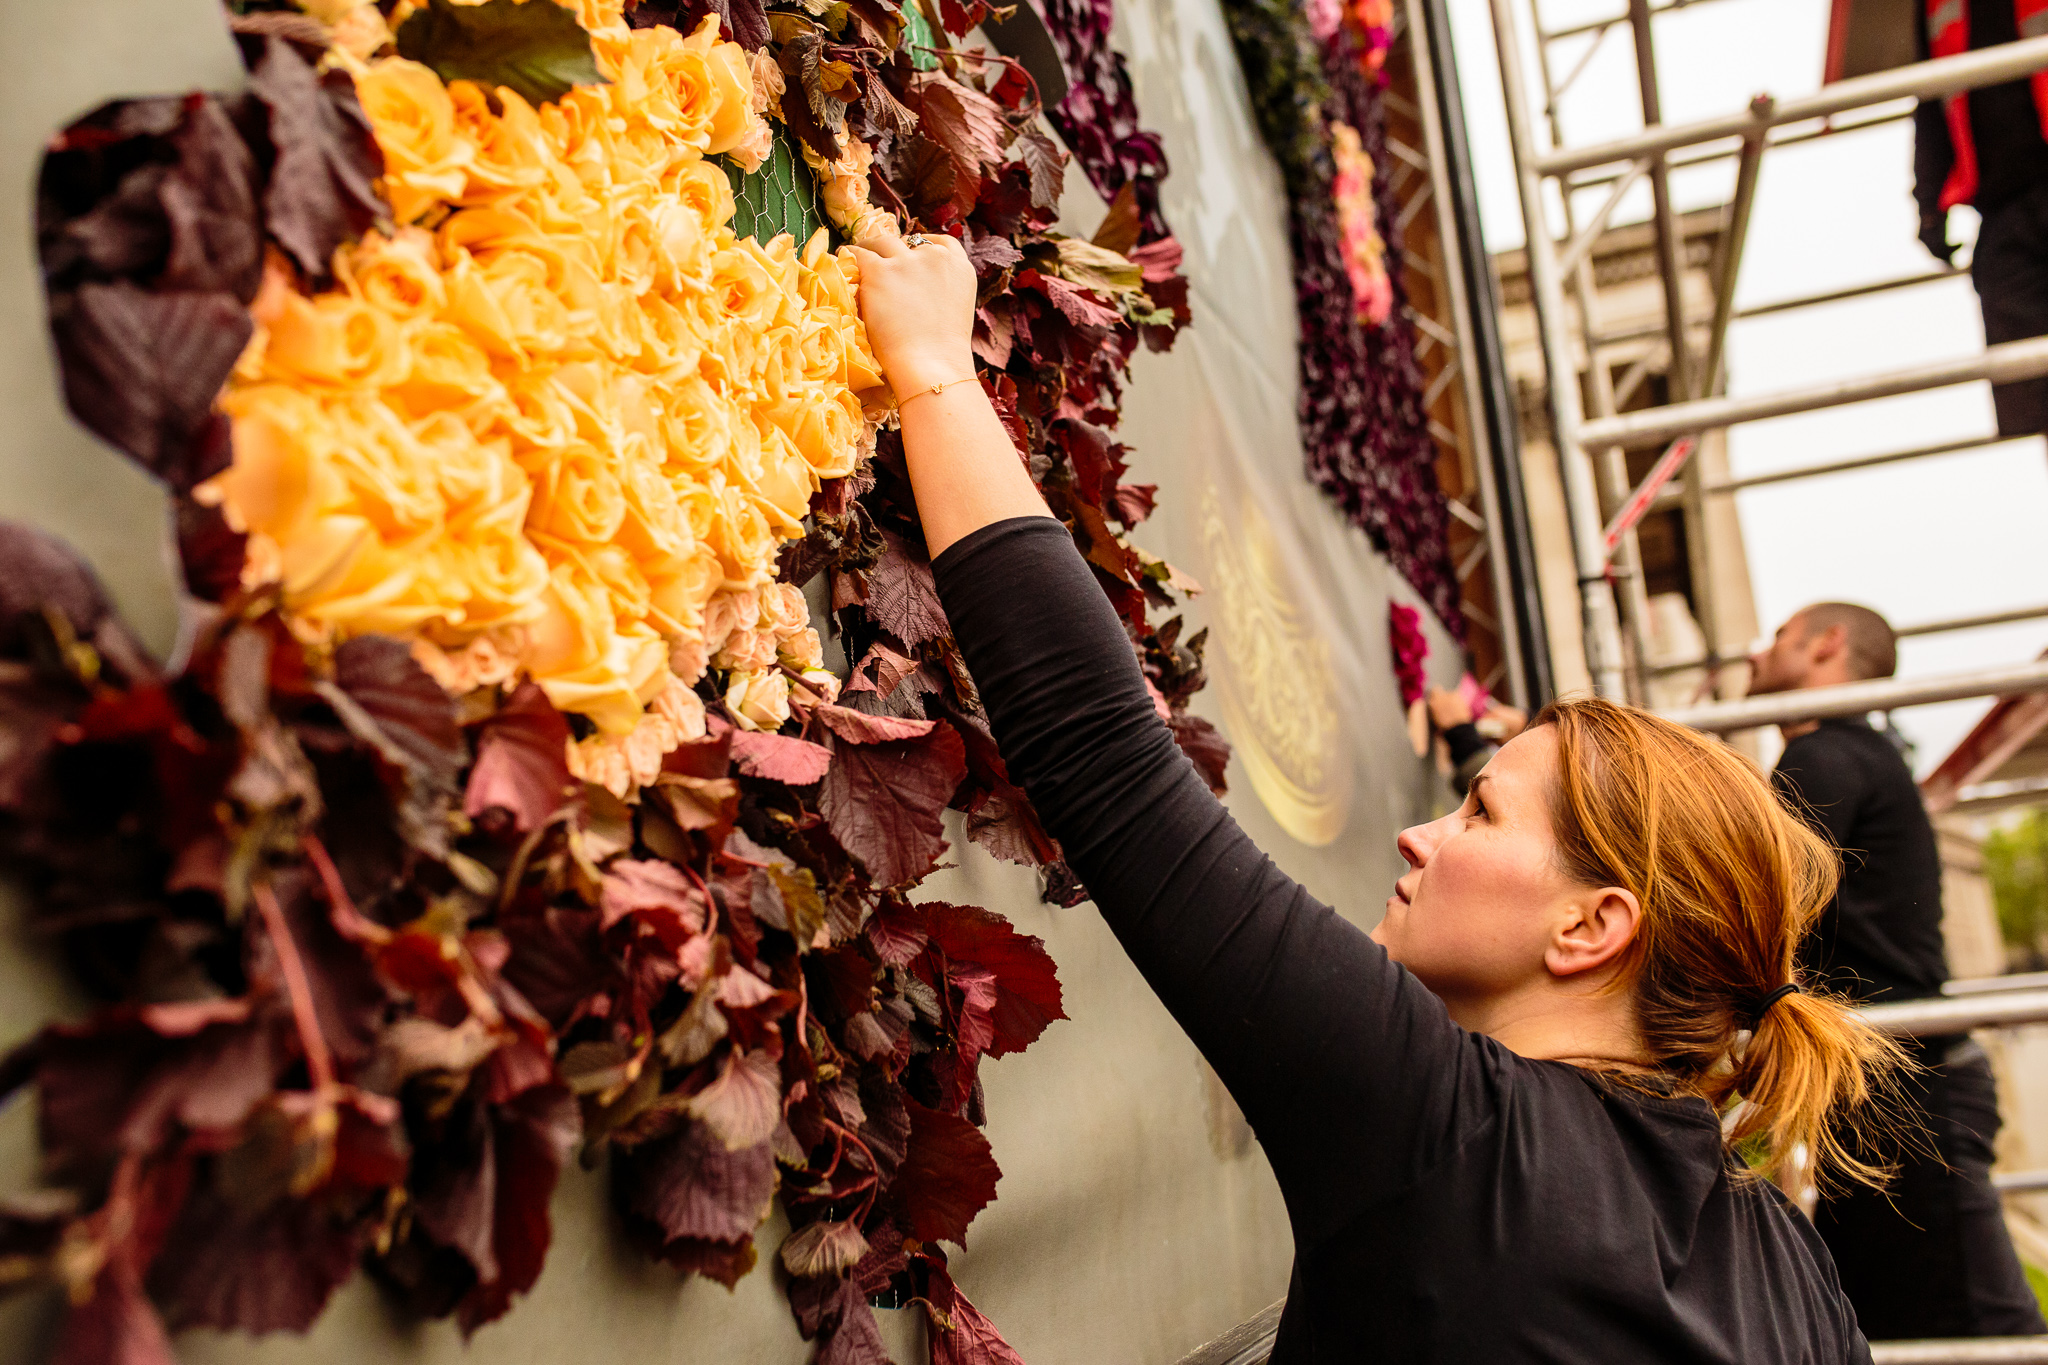 Finishing touches added to the installation by the florists